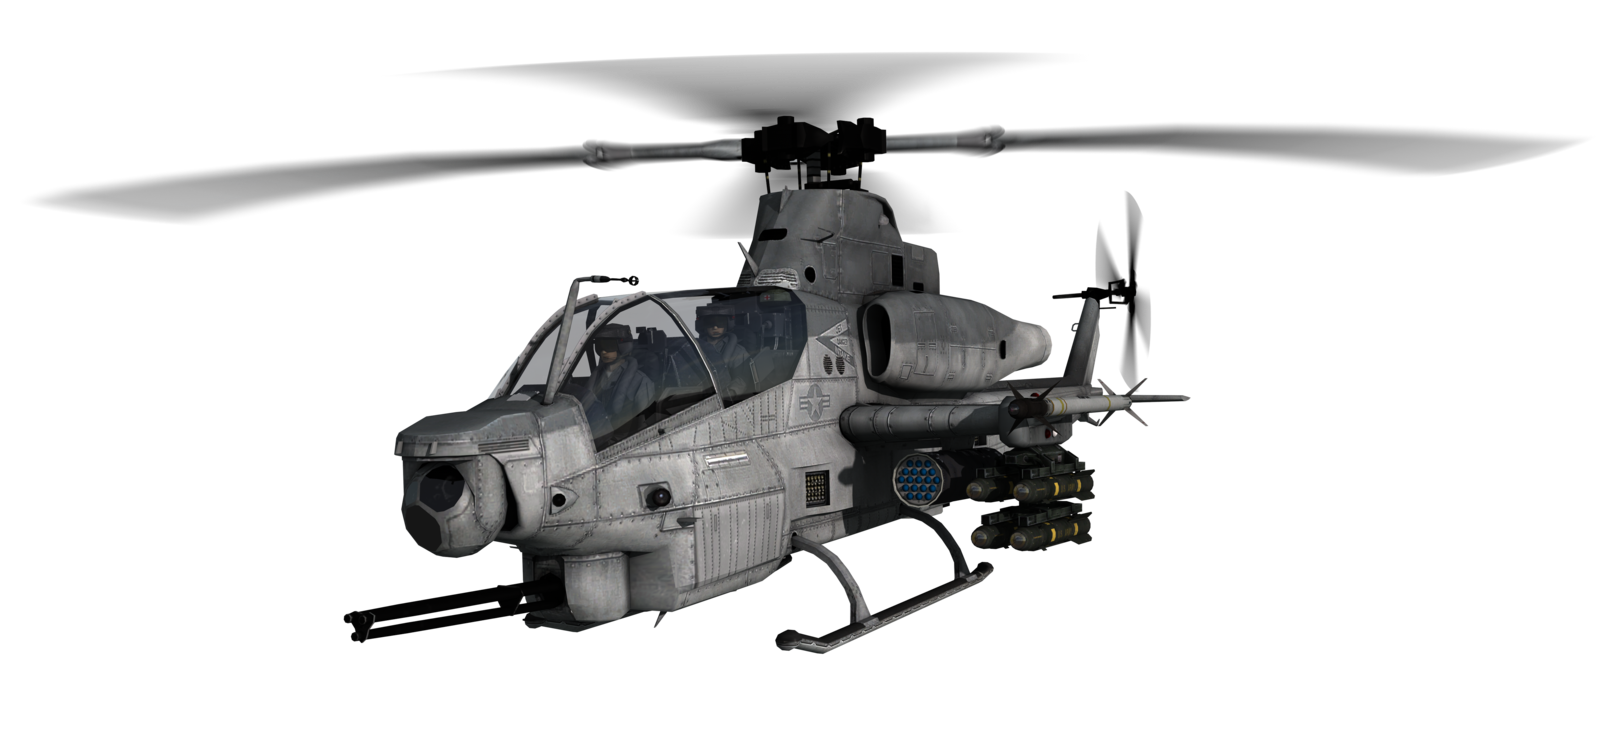 Helicopter Png image #40857